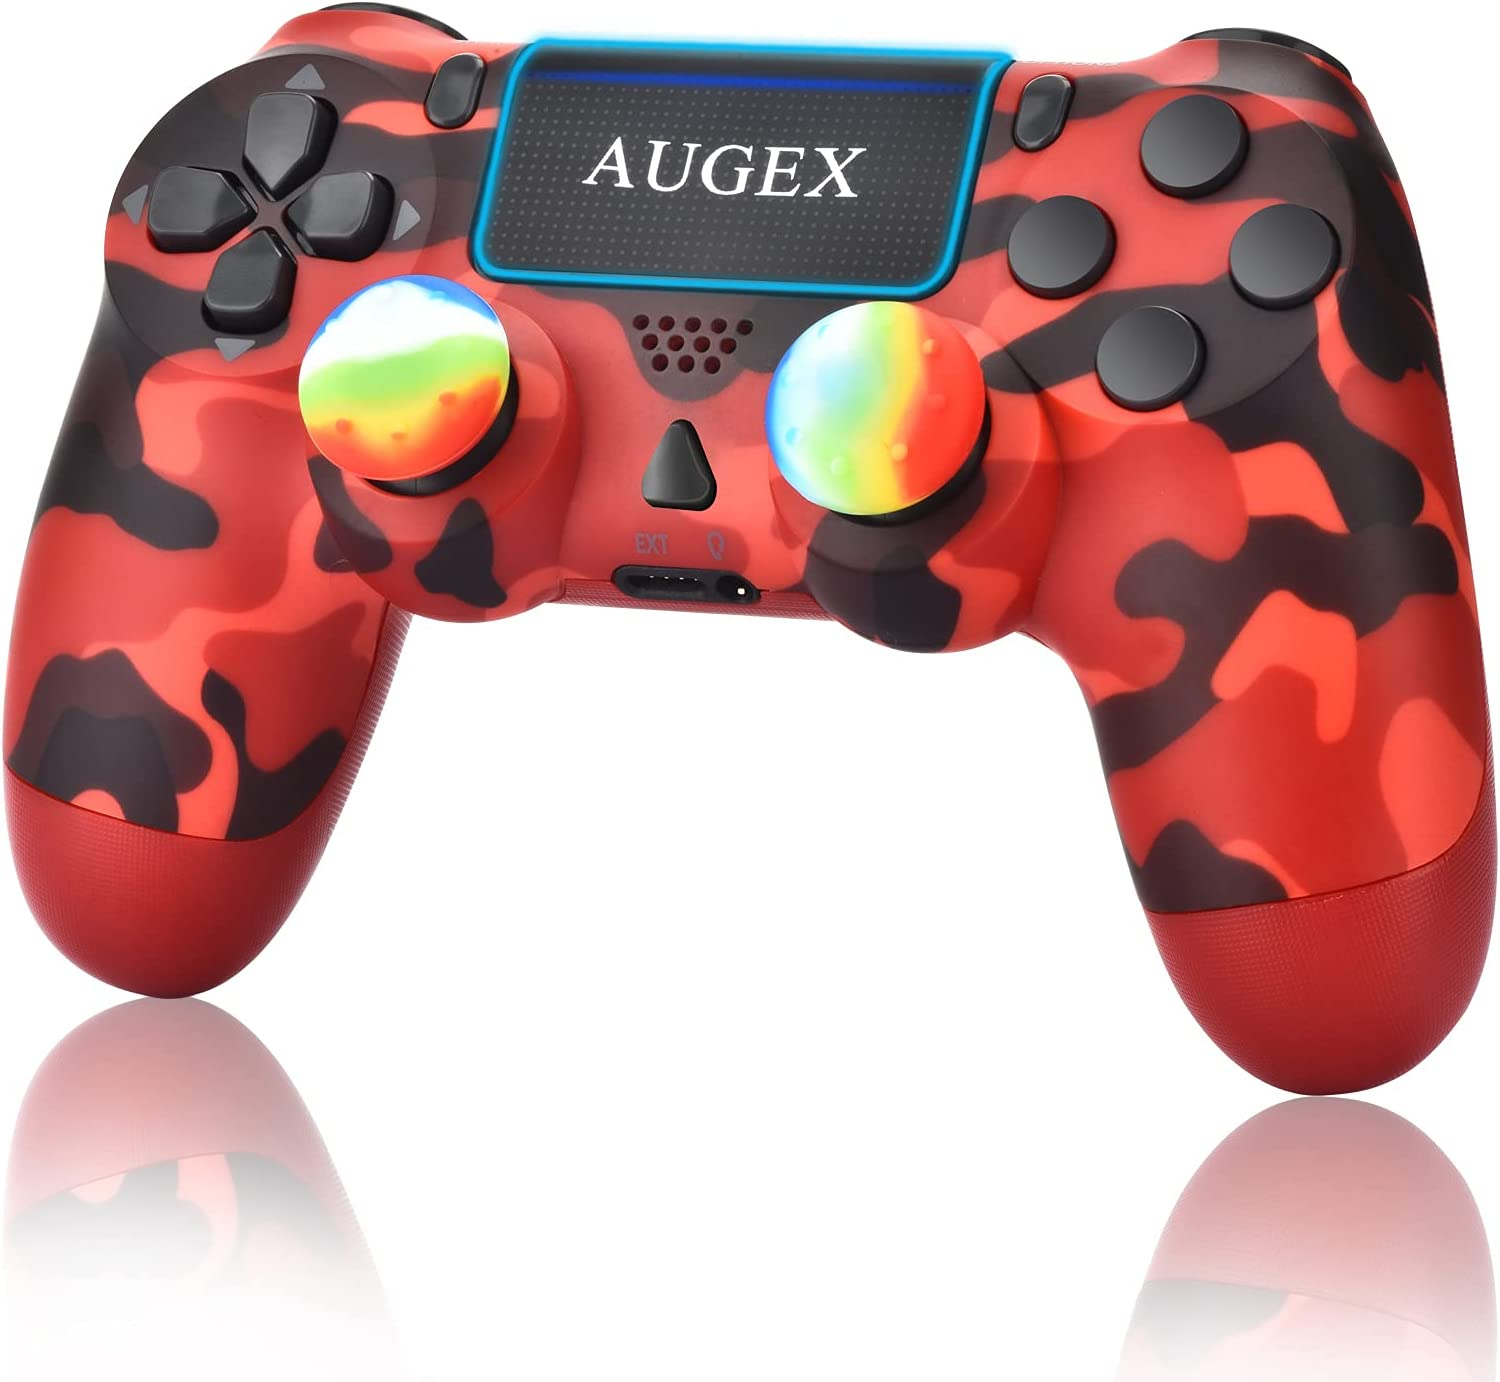 AUGEX Camo Red Wireless Controller, Remote Control with Charging Cable and Two Motors (Camouflage Red)